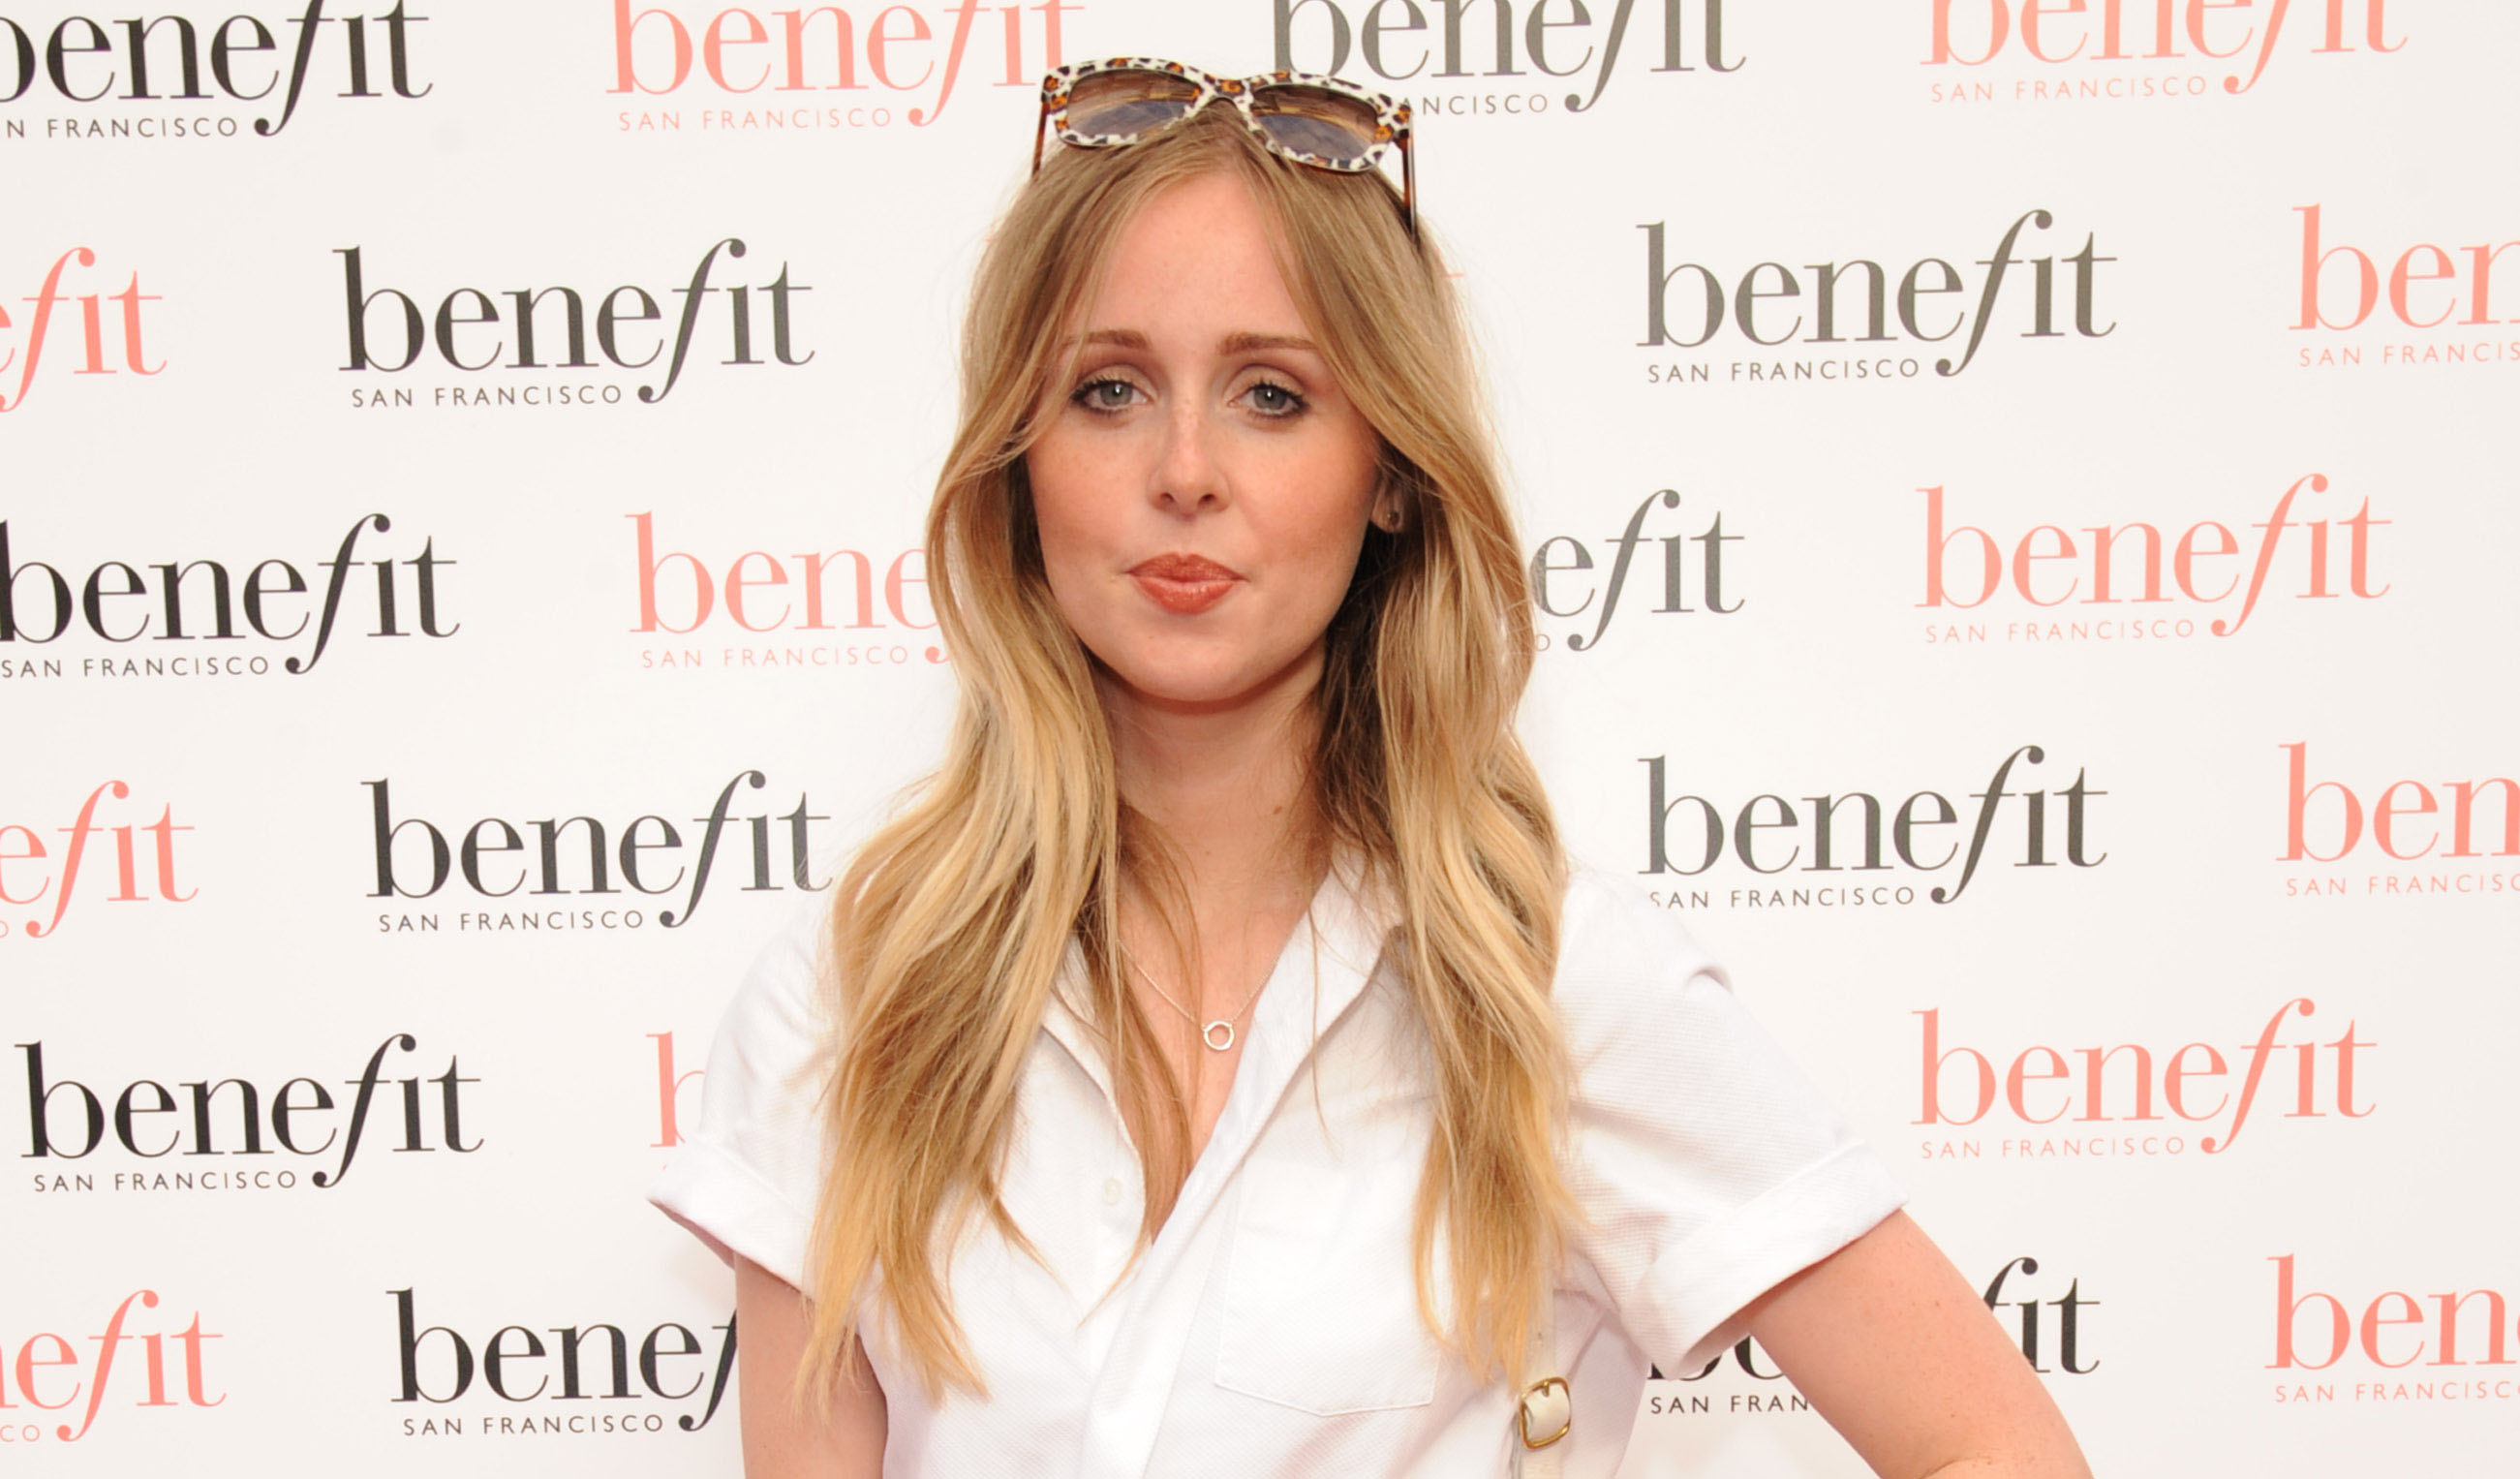 Diana Vickers - Strictly Come Dancing rumours